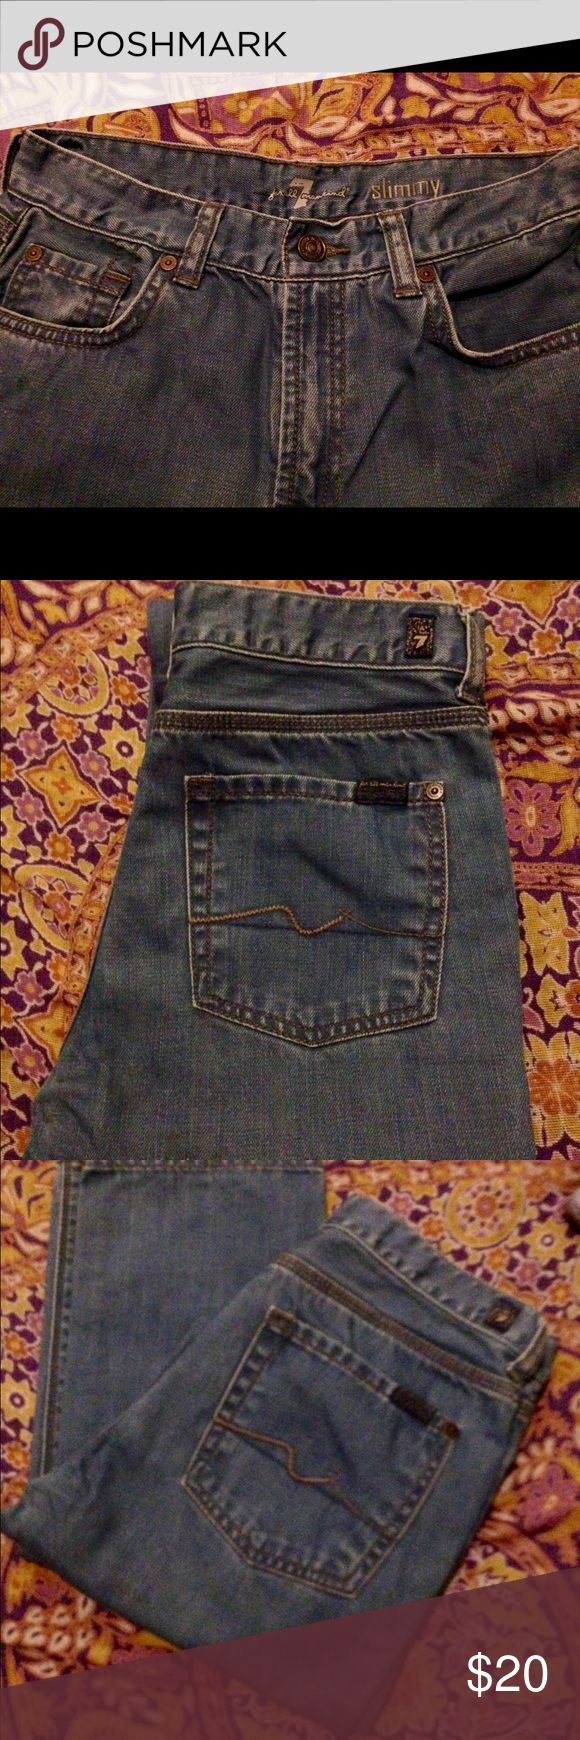 GIRL'S SEVEN OF ALL MANKIND JEANS - 'SLIMMY' SZ 14 Seven off all mankind jeans - 'slimmy' - size 14 EUC Seven of all mankind  Bottoms Jeans